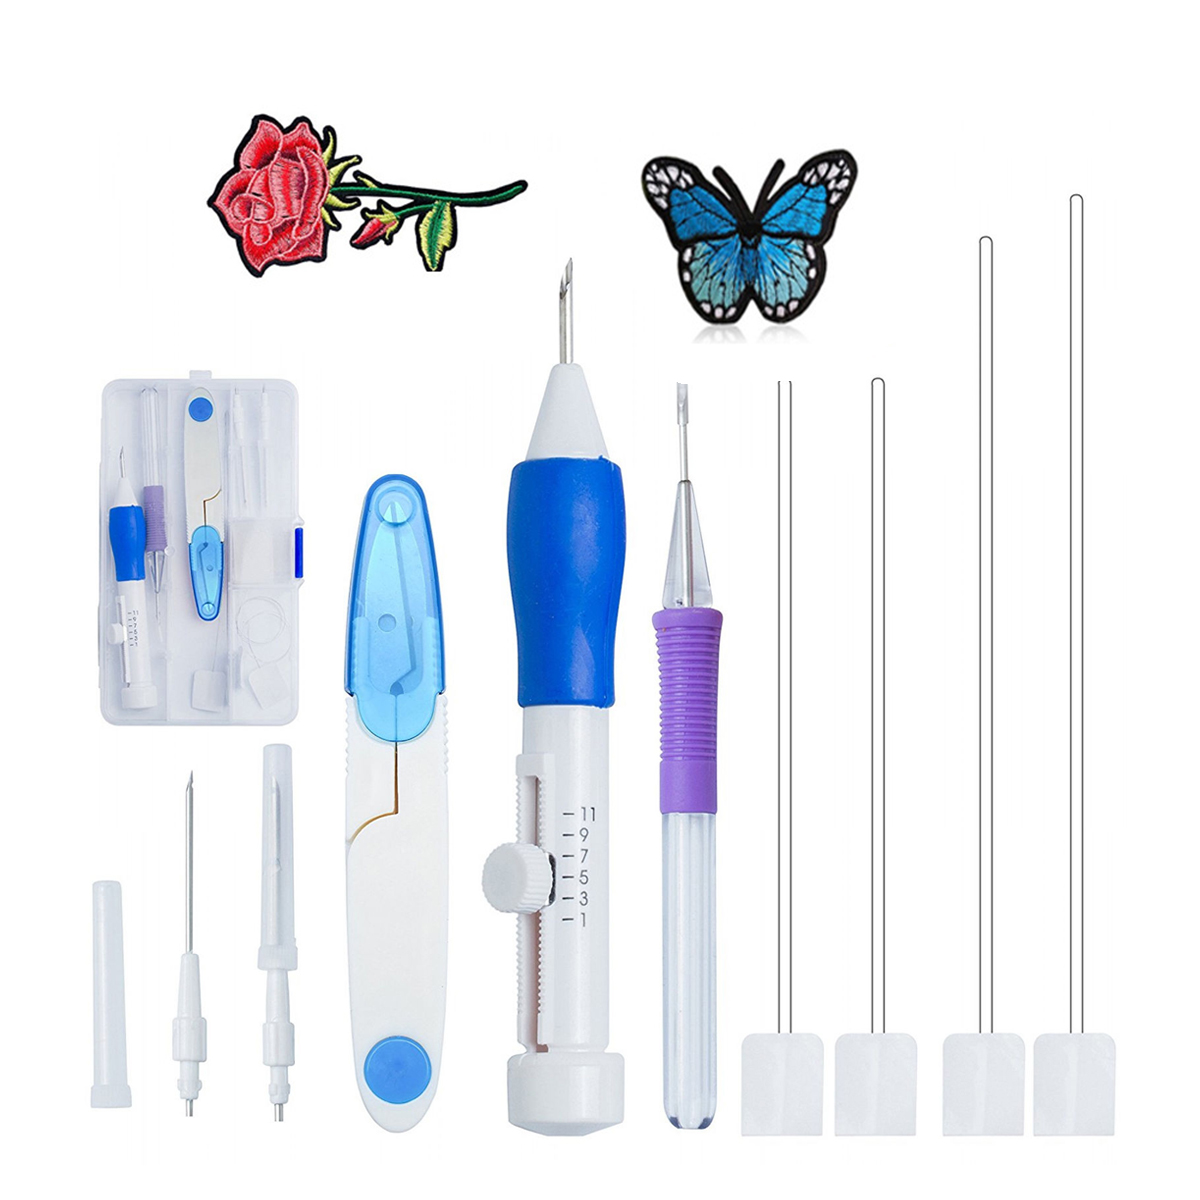 Meigar 1 Set ABS Plastic Diy Magic Embroidery Pen Set Adjustable Knitting Sewing Tool Kit Punch Needle